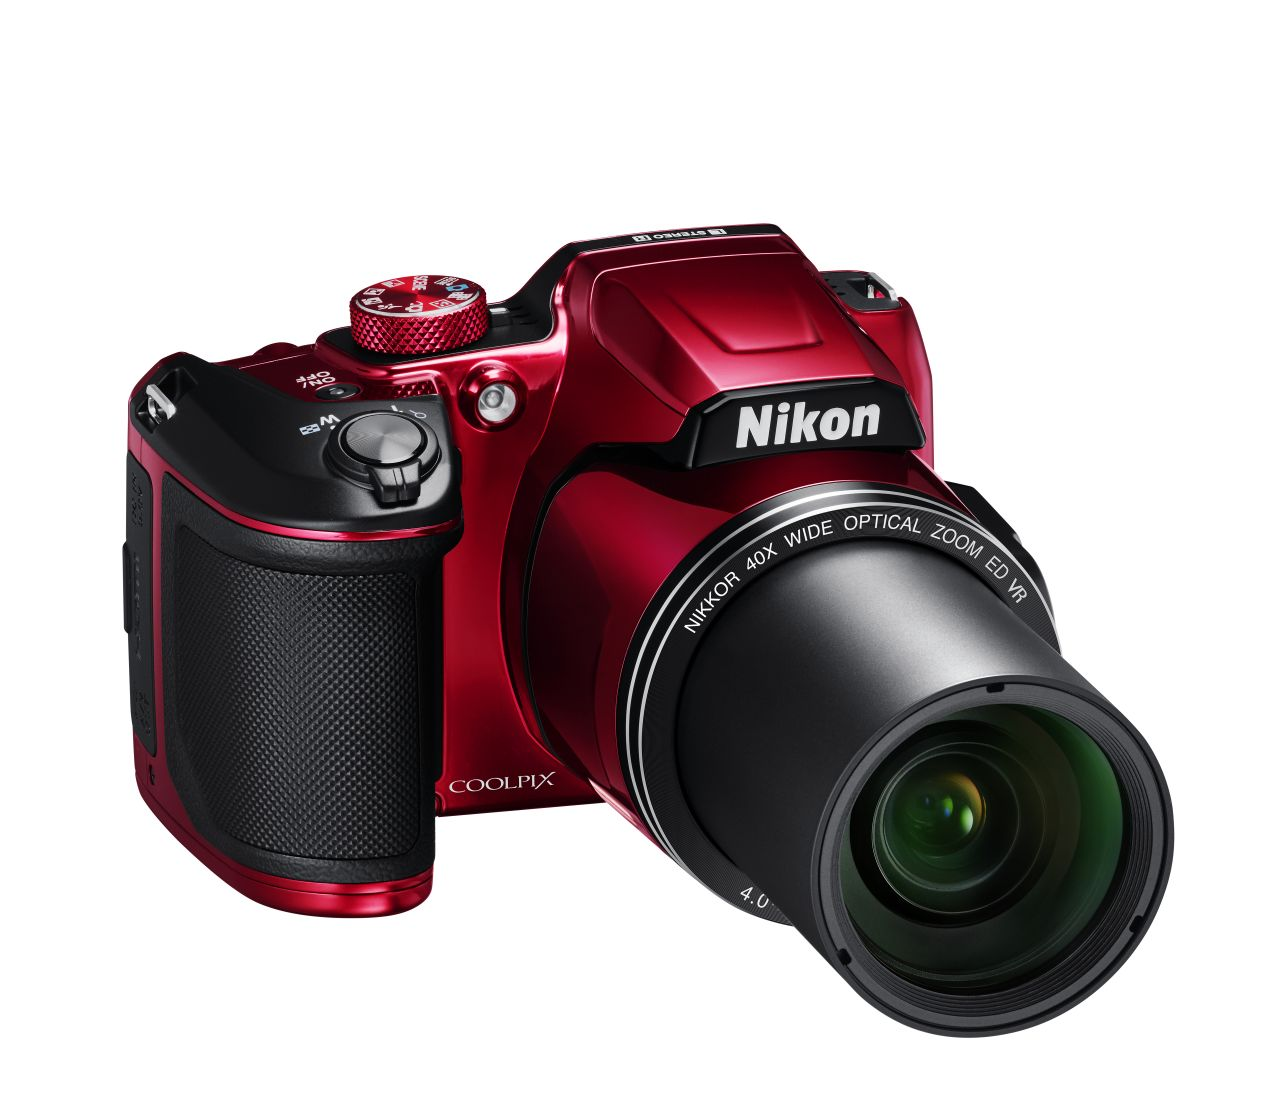 Nikon - 16MP CoolPix B500 Digital Still Camera - Red